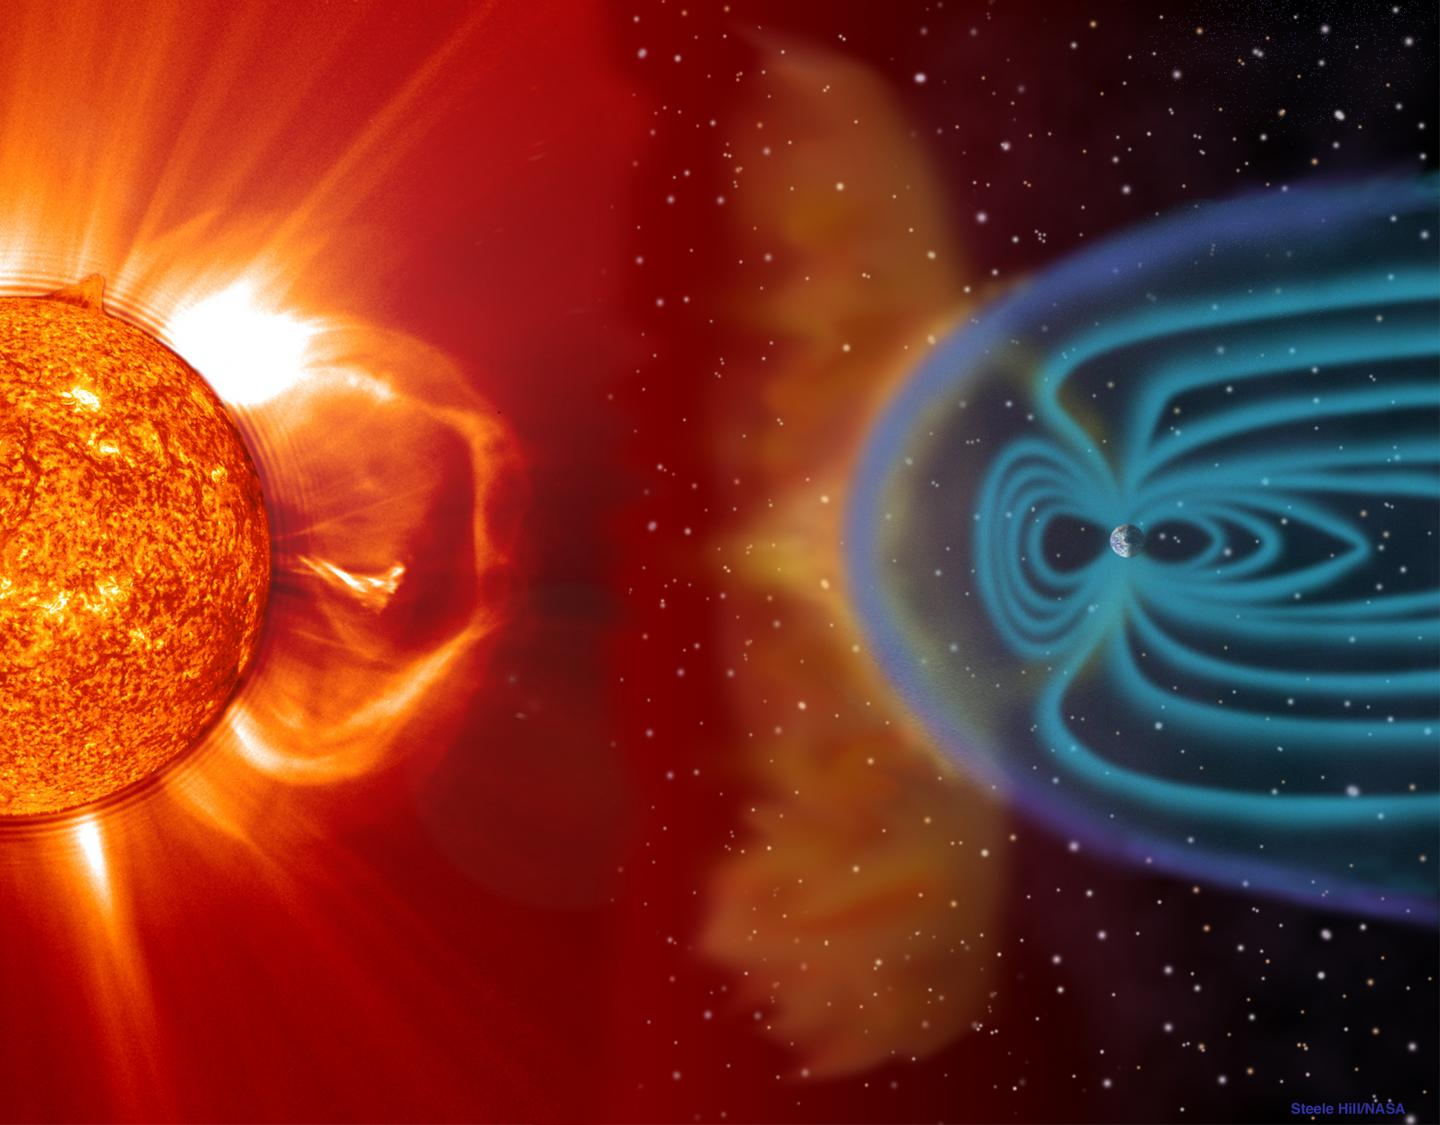 Magnetic Fields Won't Be Enough to Protect Planets Against Stellar Death